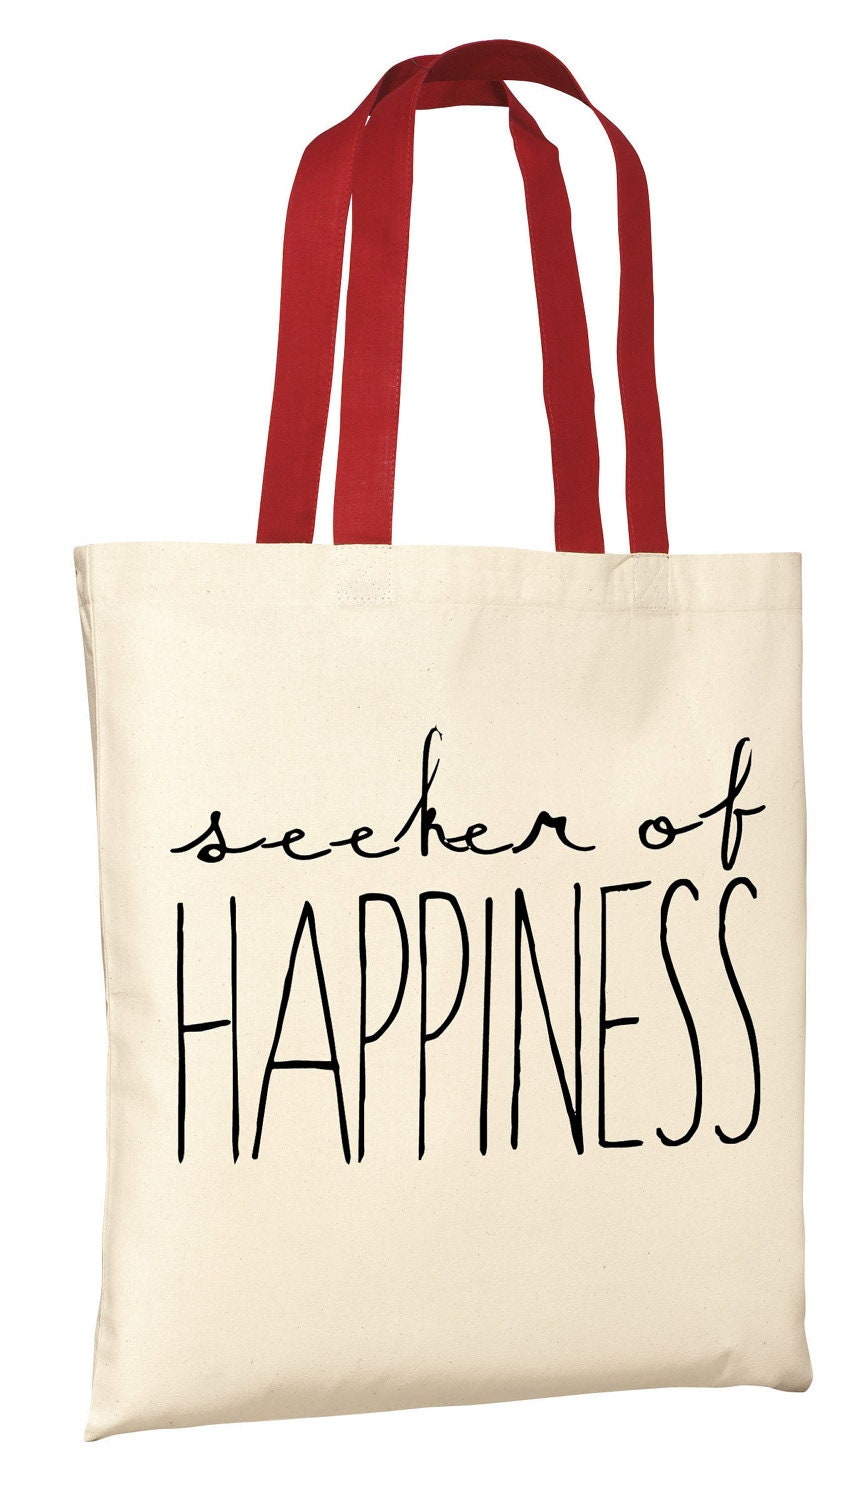 Seeker of Happines - Canvas Tote Bag (You Choose Handle Color)